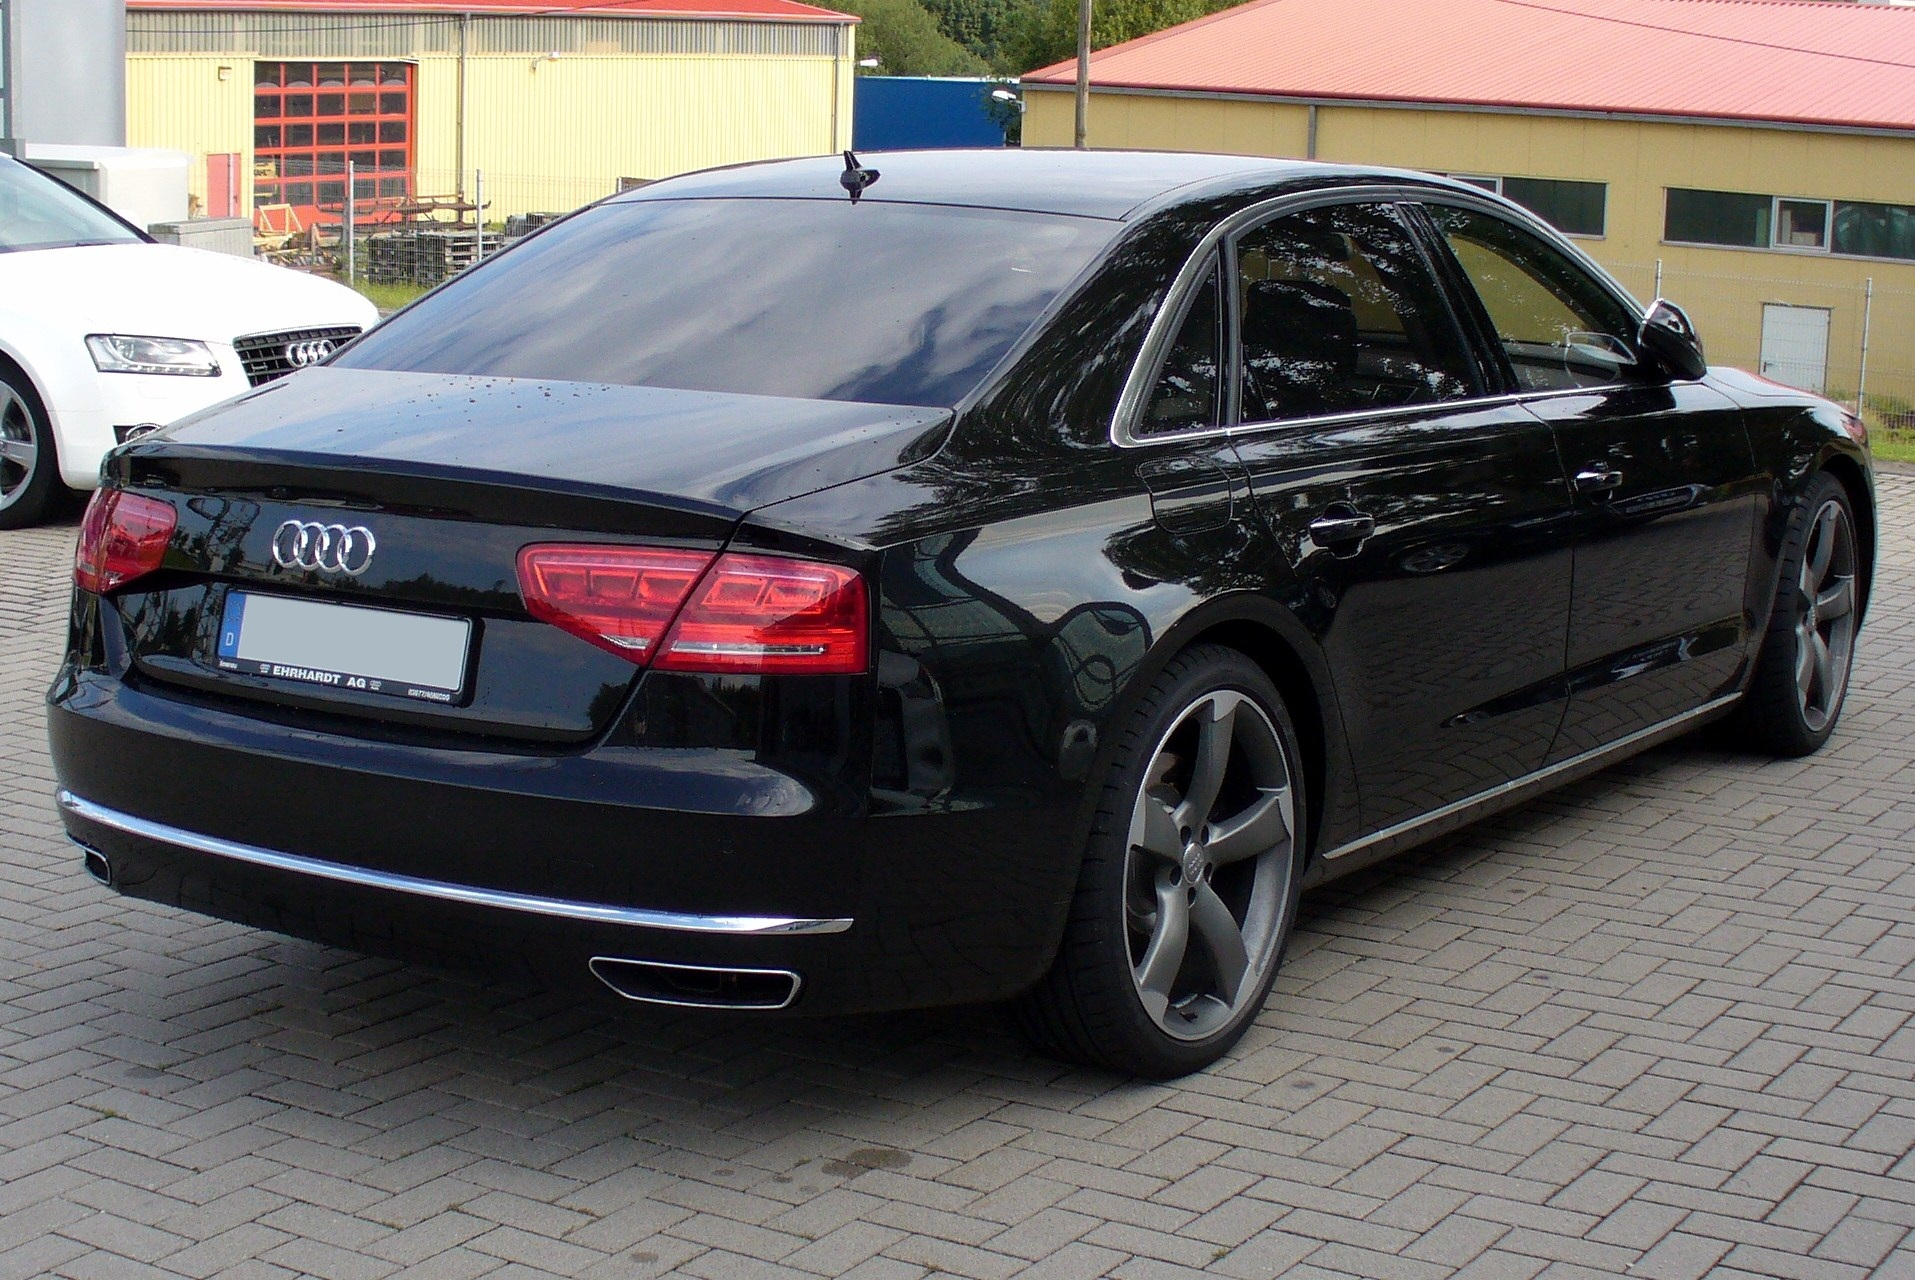 2012 audi a8 iii d4 pictures information and specs. Black Bedroom Furniture Sets. Home Design Ideas